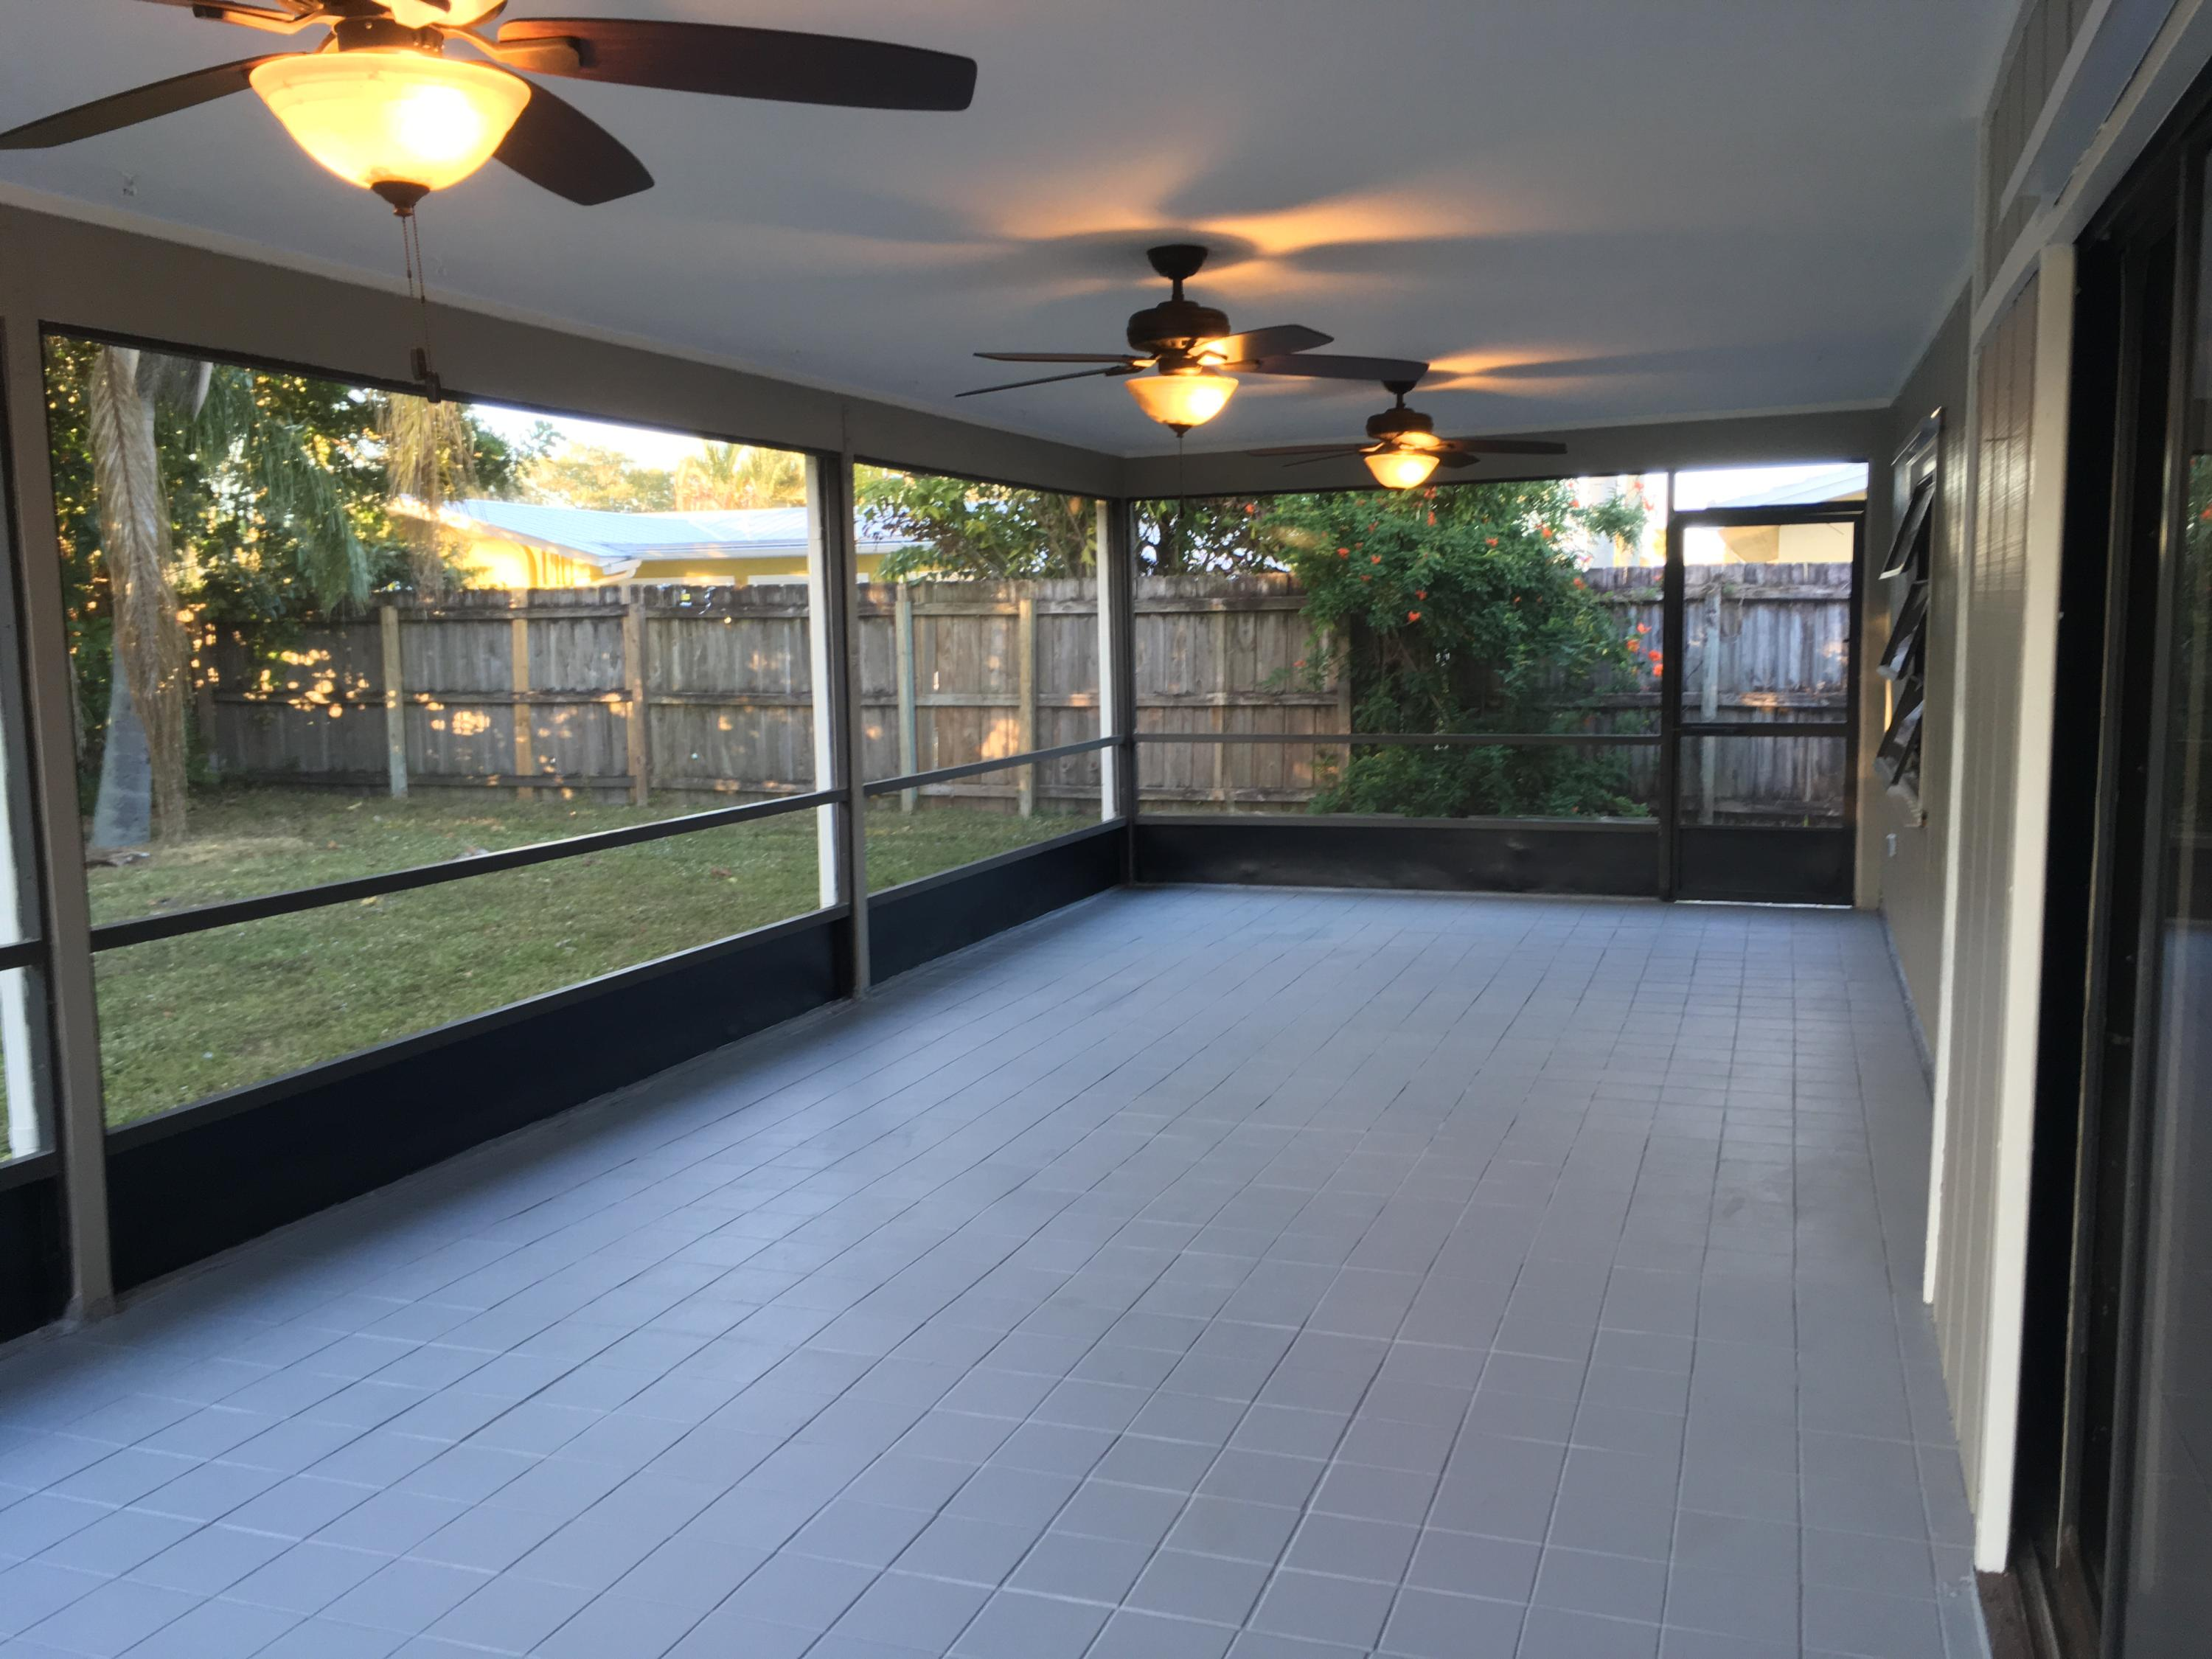 PALM BEACH GARDENS CITY OF PL 3 REALTY